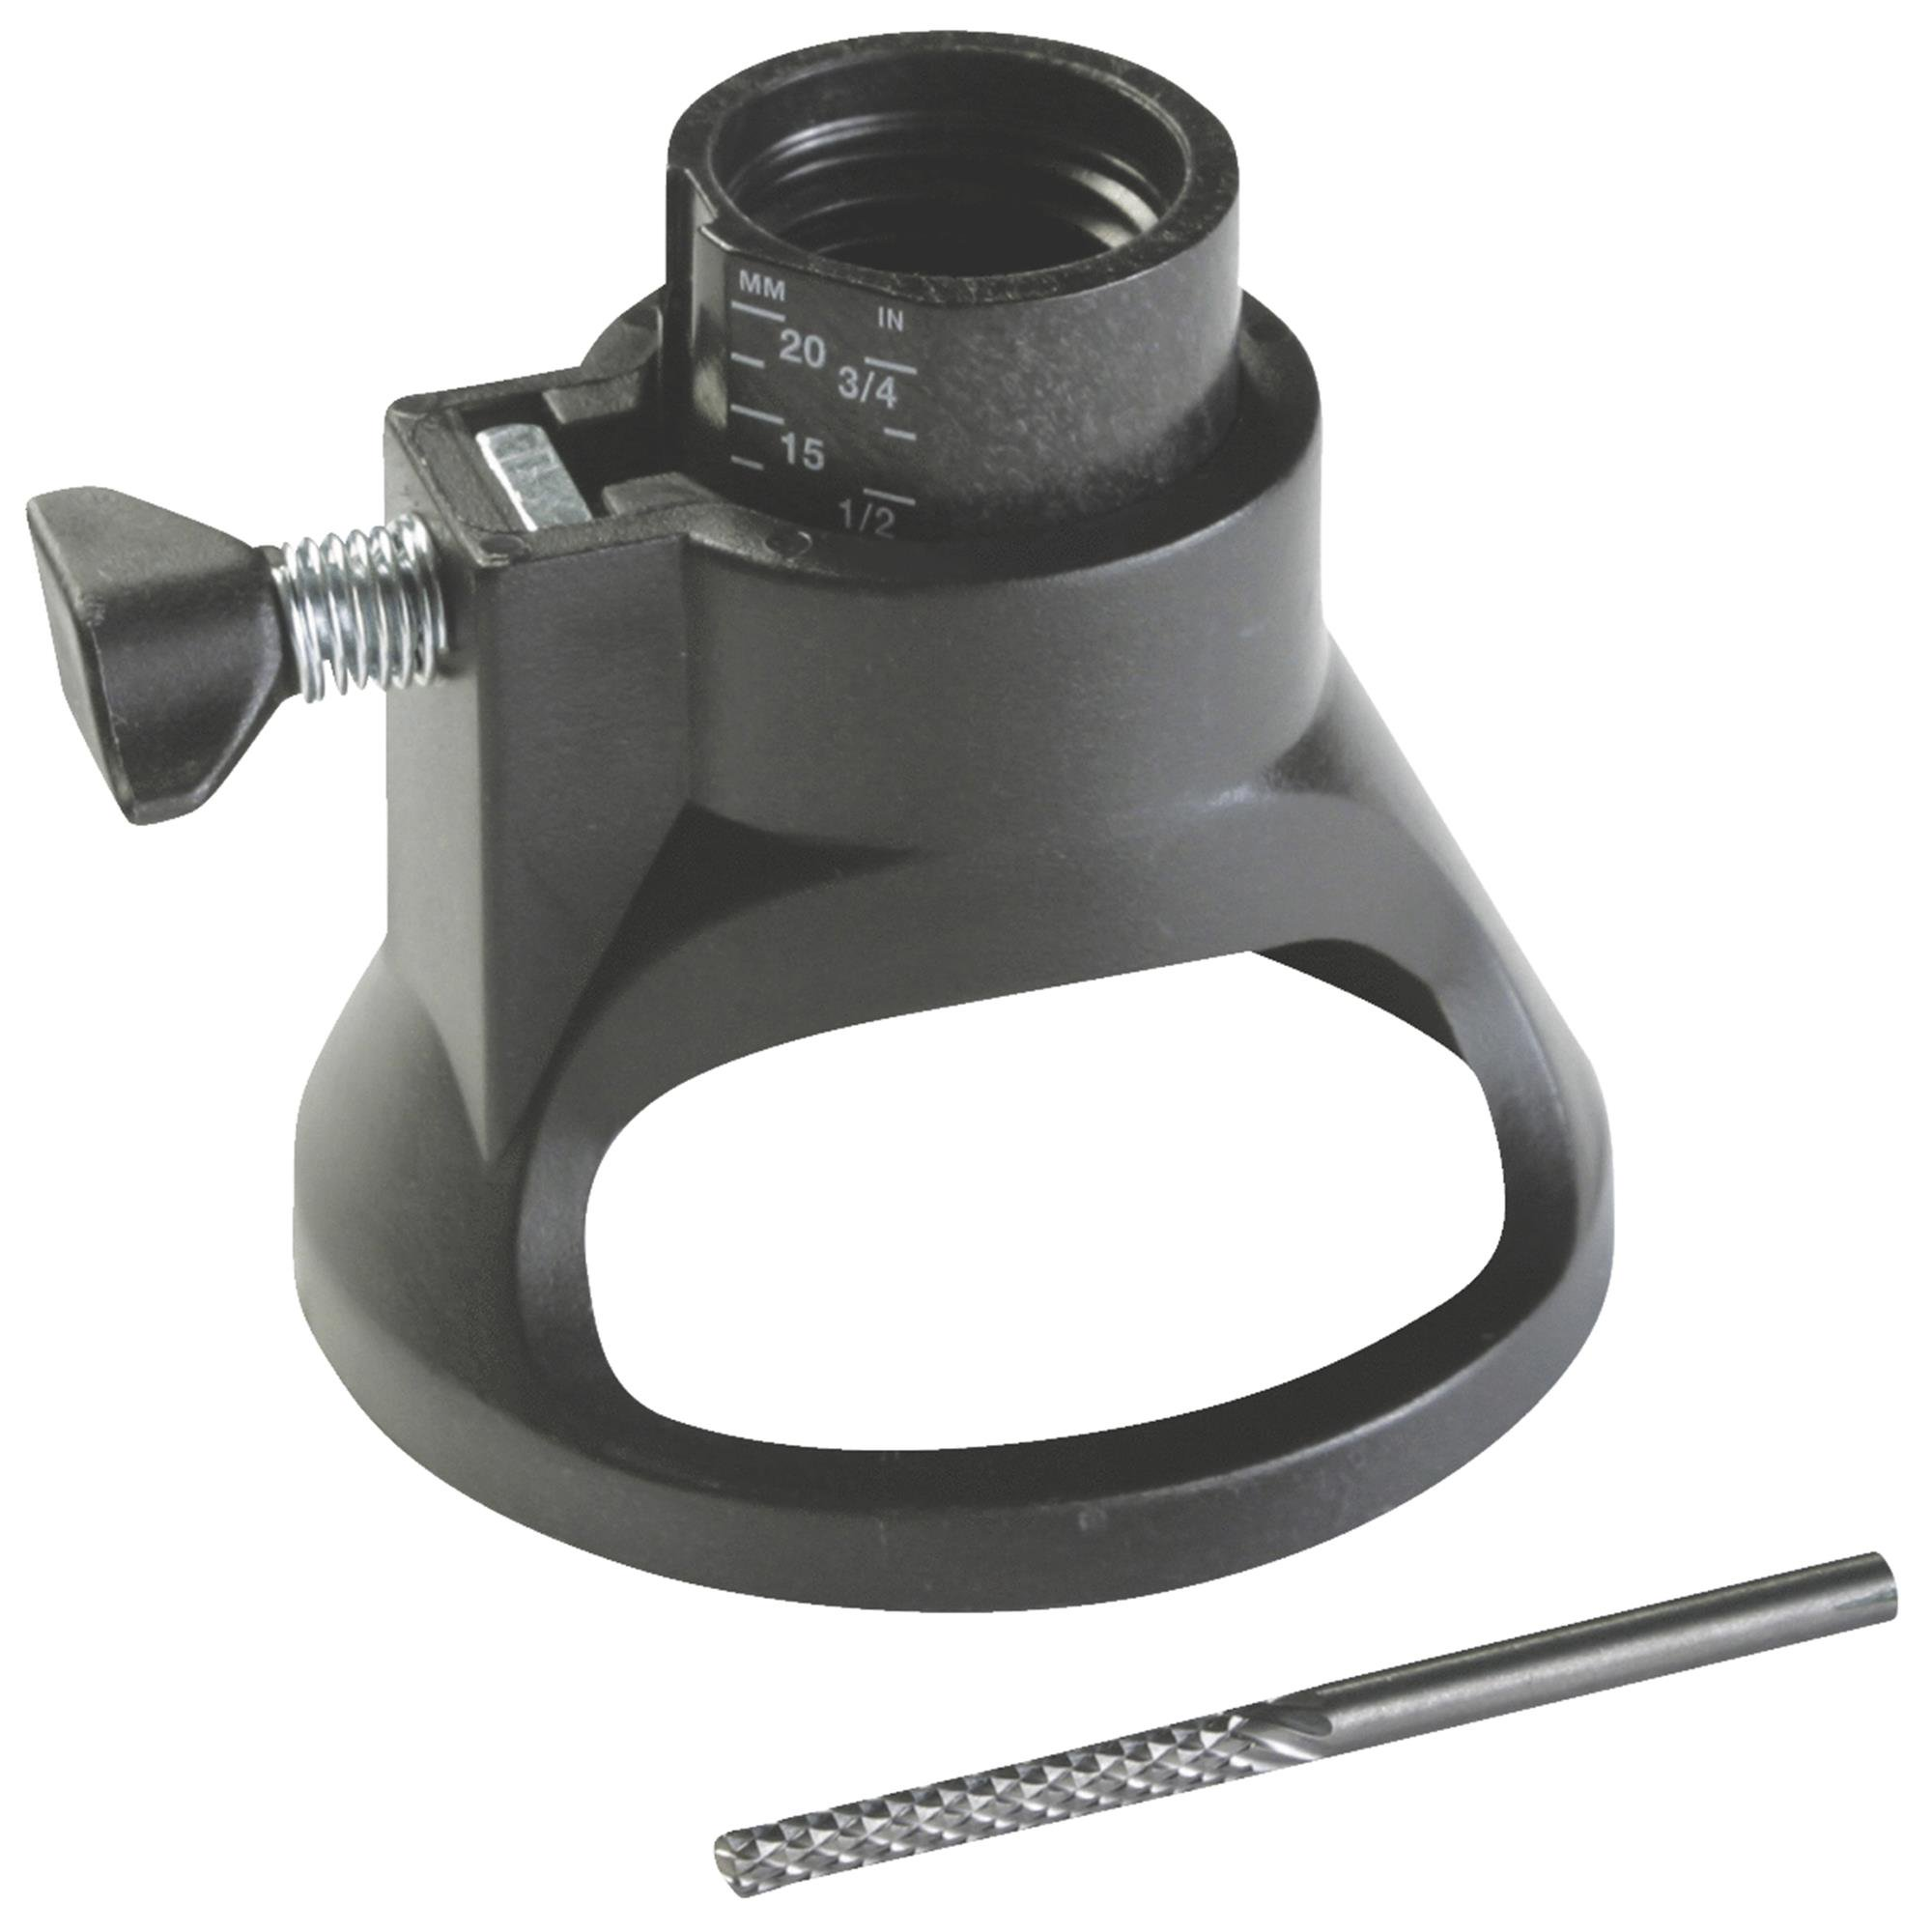 Dremel 566 Tile Cutting Attachment Kit for Rotary Tools, 2-Piece